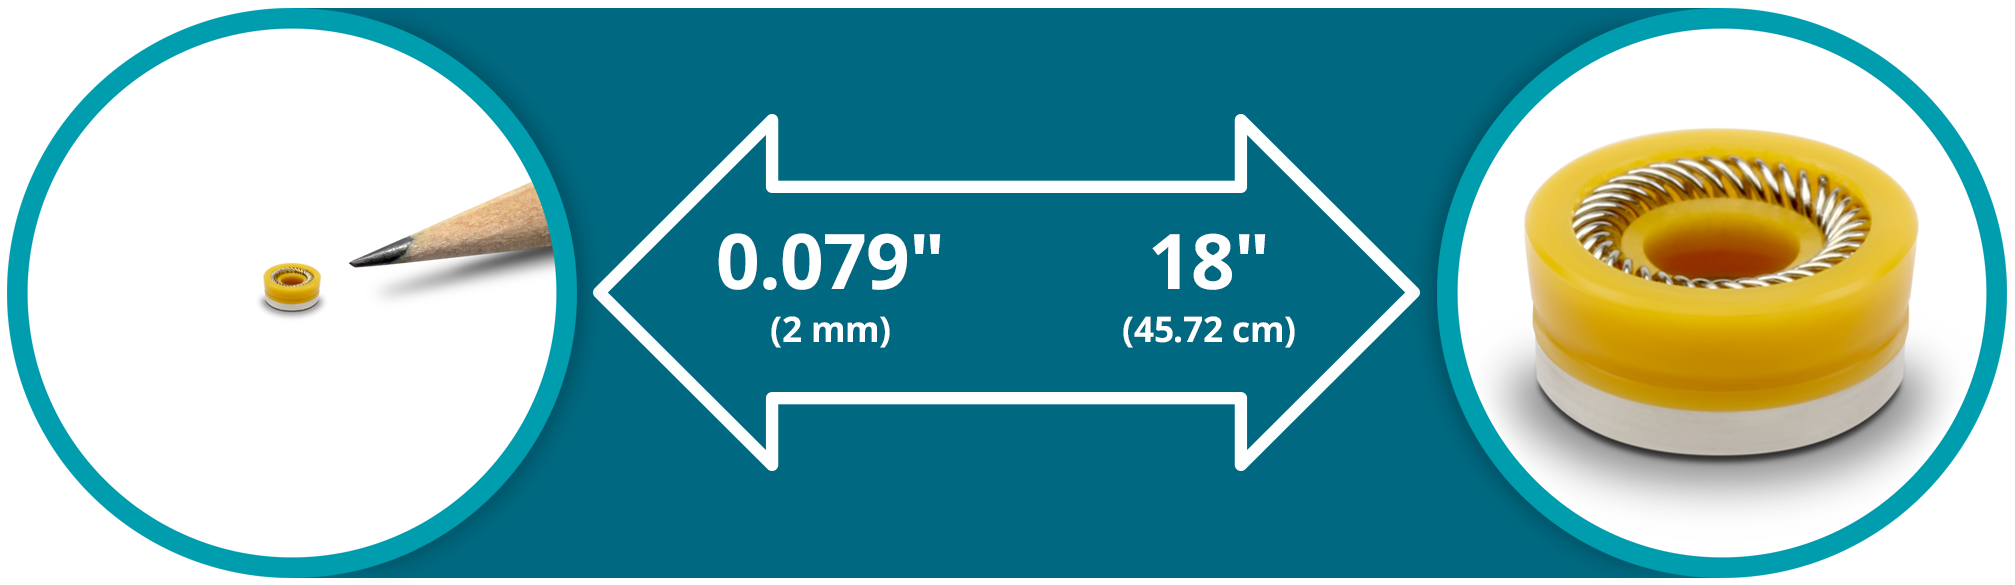 Enduris Seal Sizes